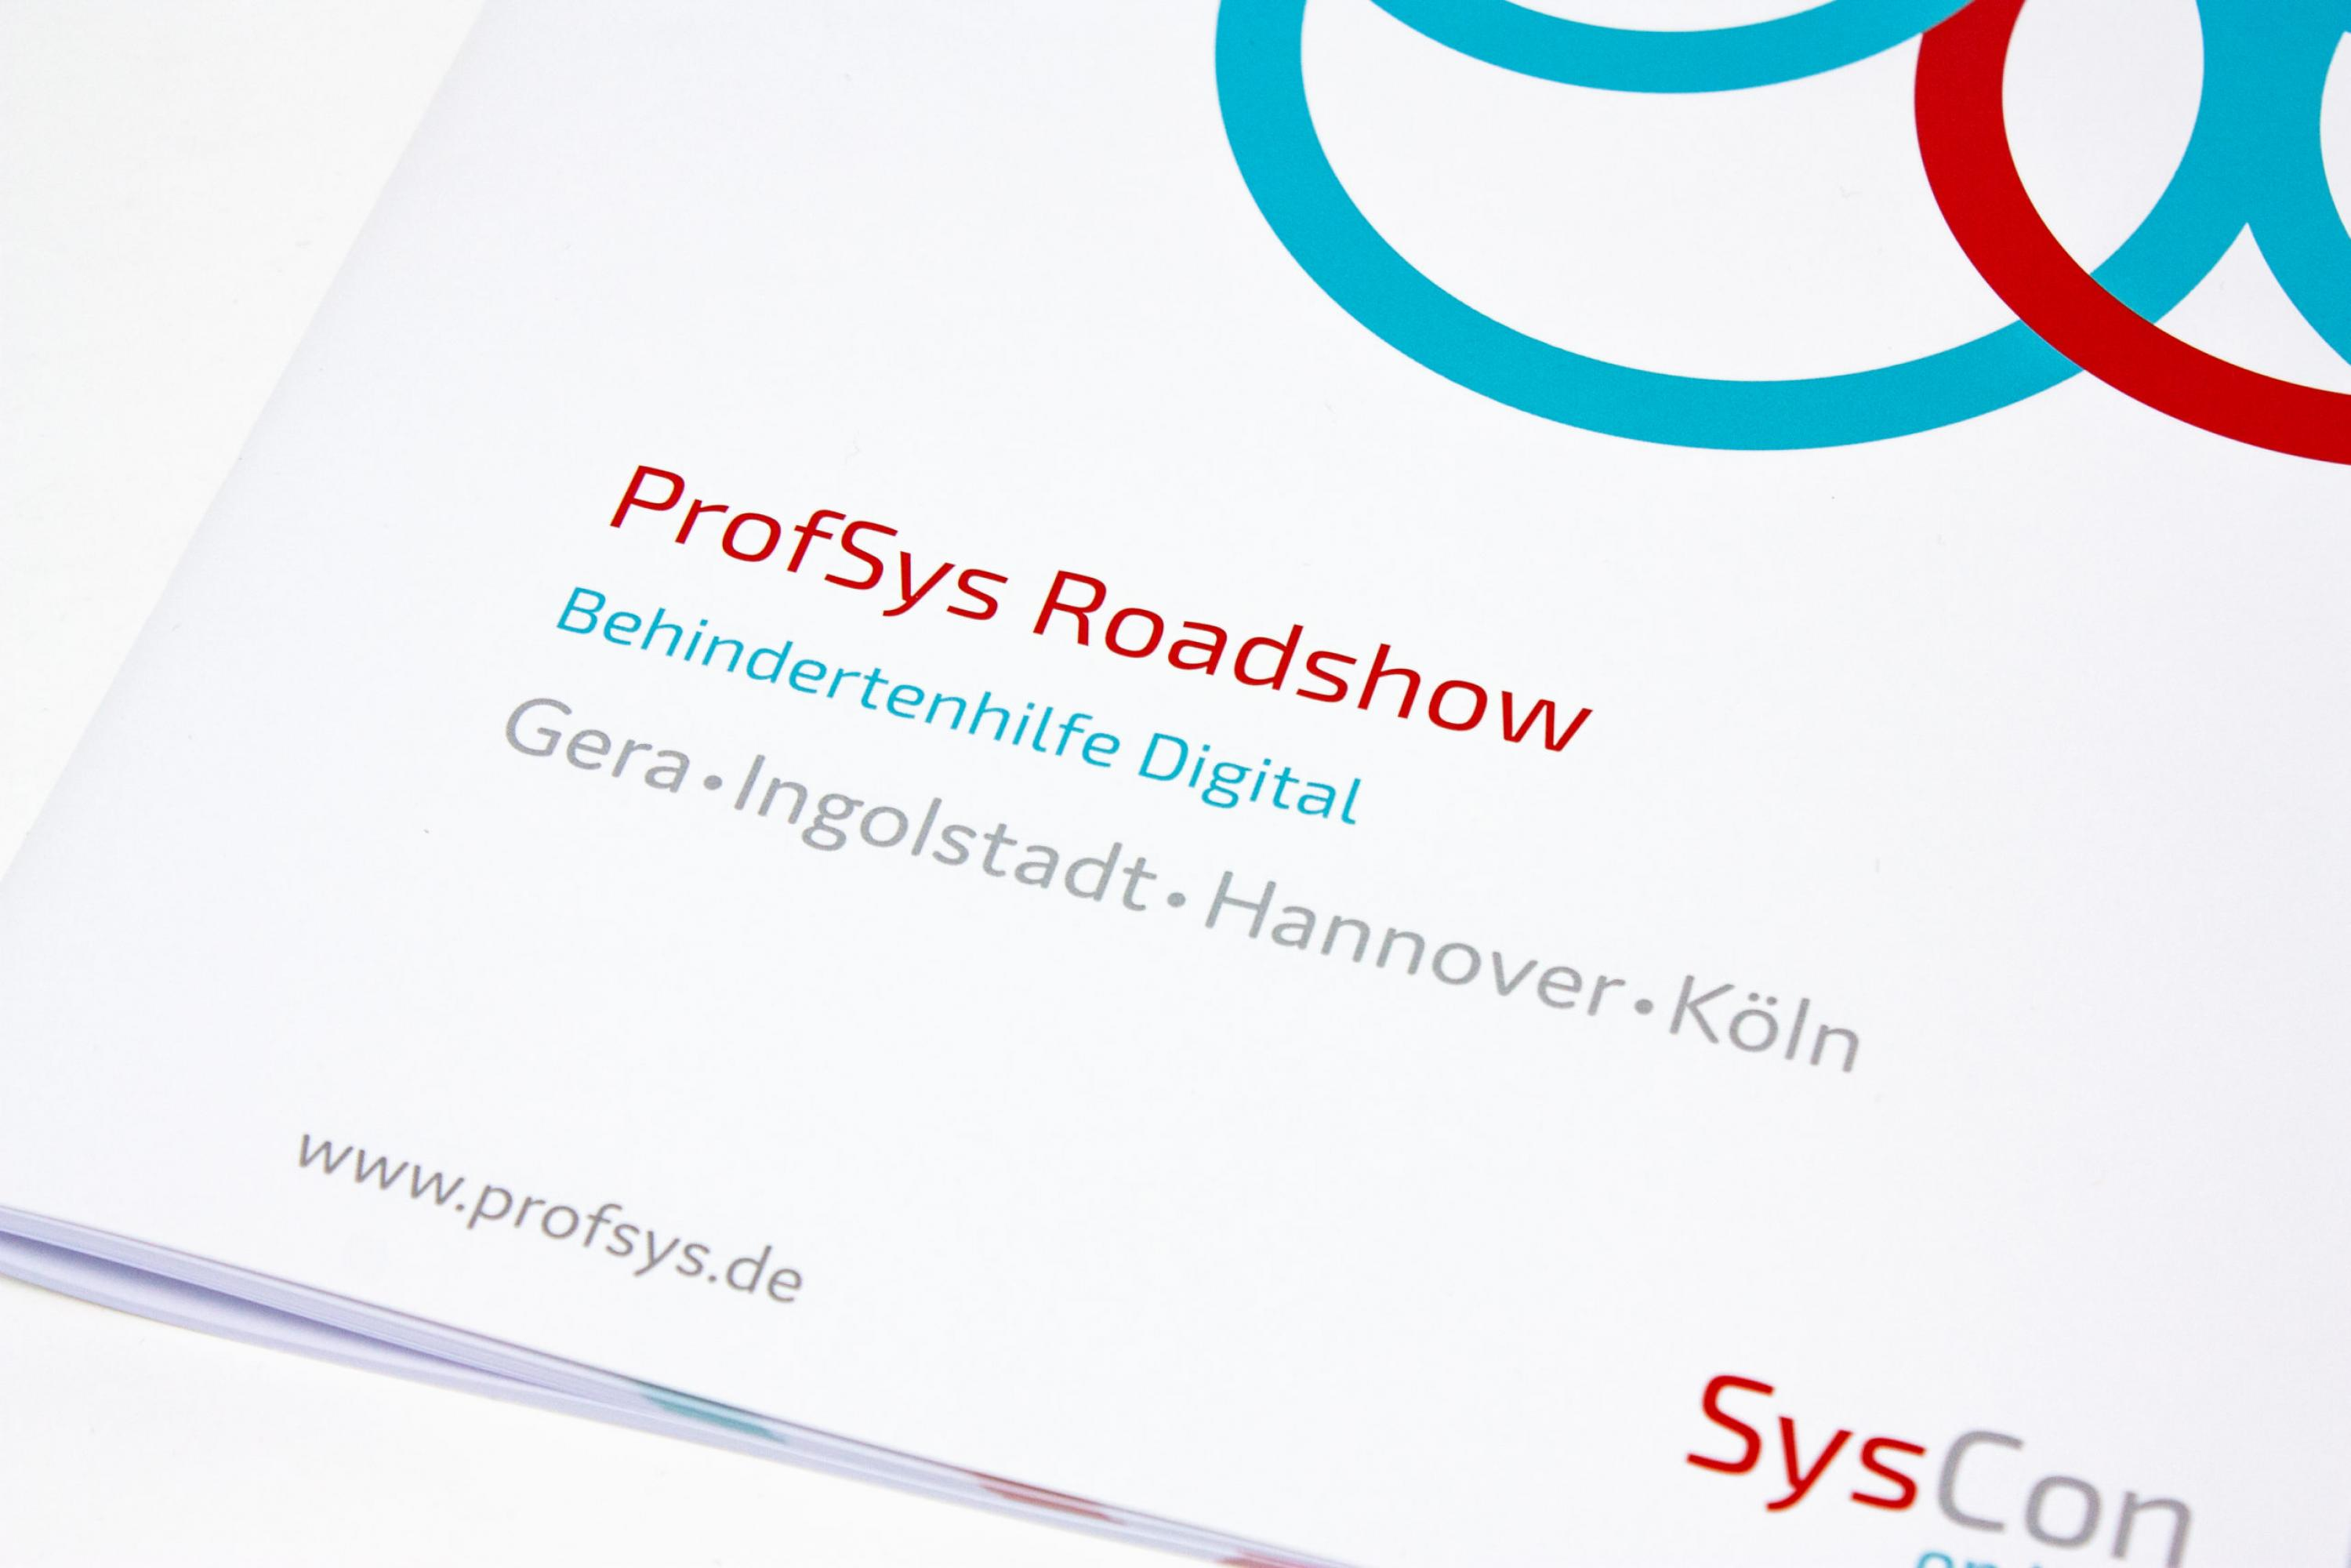 FORMLOS-ProfSys-SysCon2018-Corporate-Design-Print-6